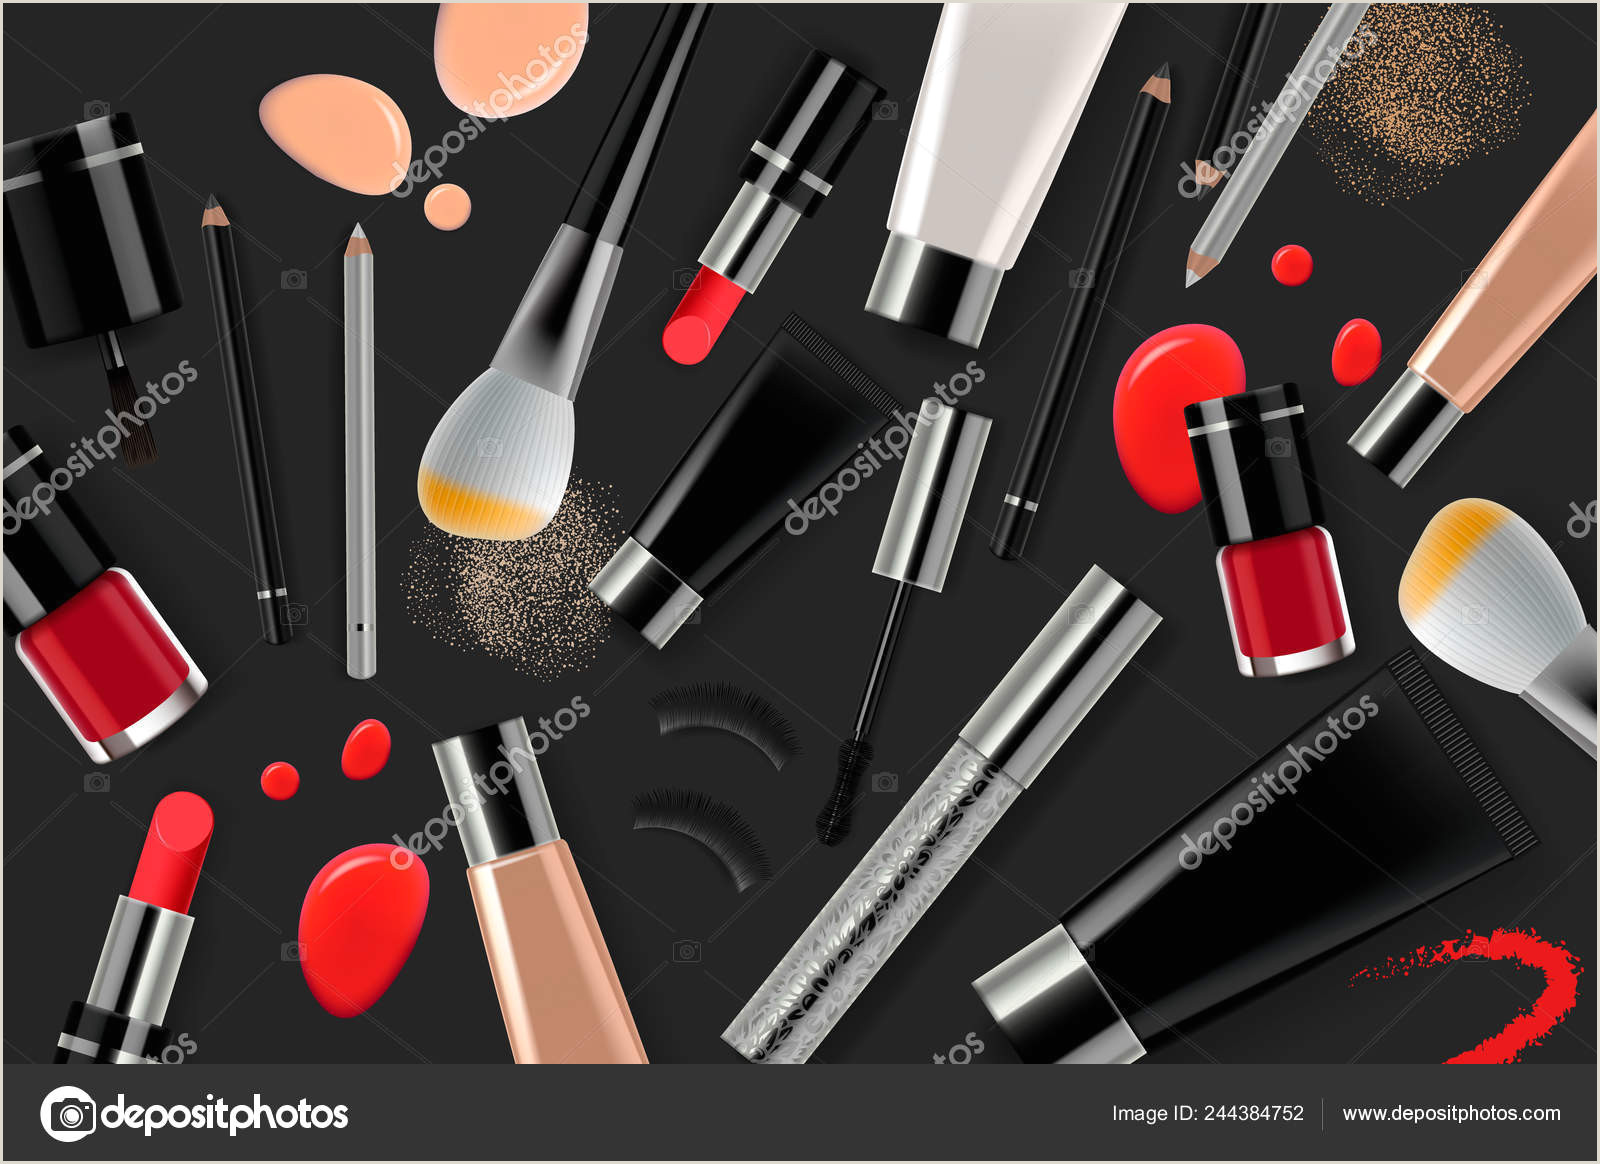 Make Up Banners Makeup Banner Template For Online Beauty Store Poster Design With Beauty Products And Cosmetic Line Shopping Vector Illustration